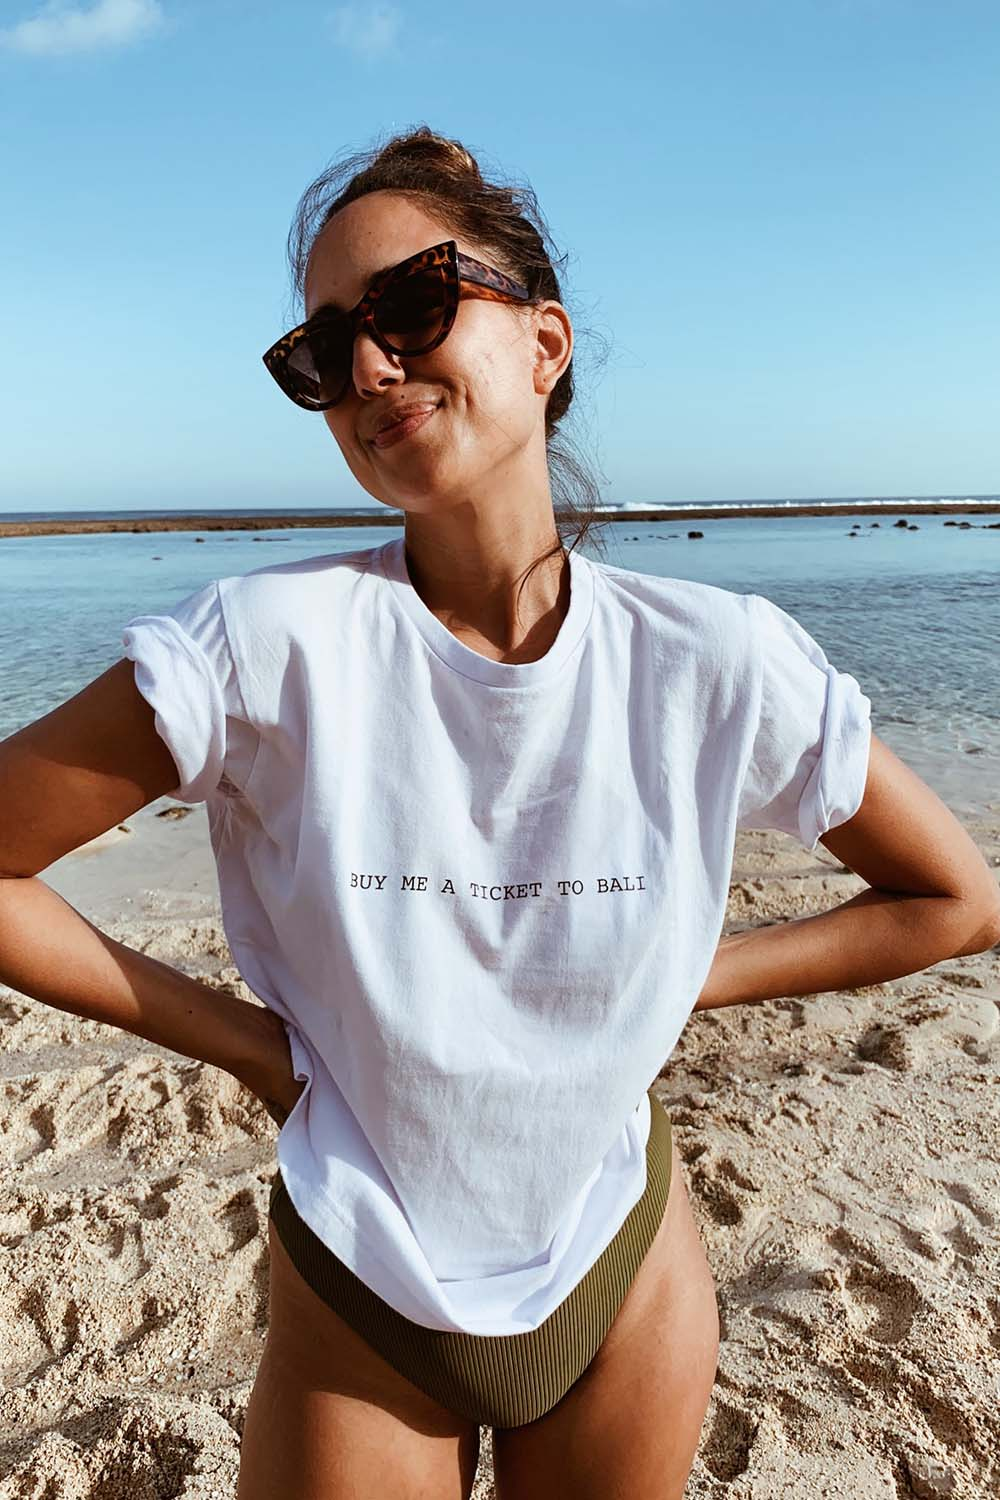 A Ticket to Bali T-shirt